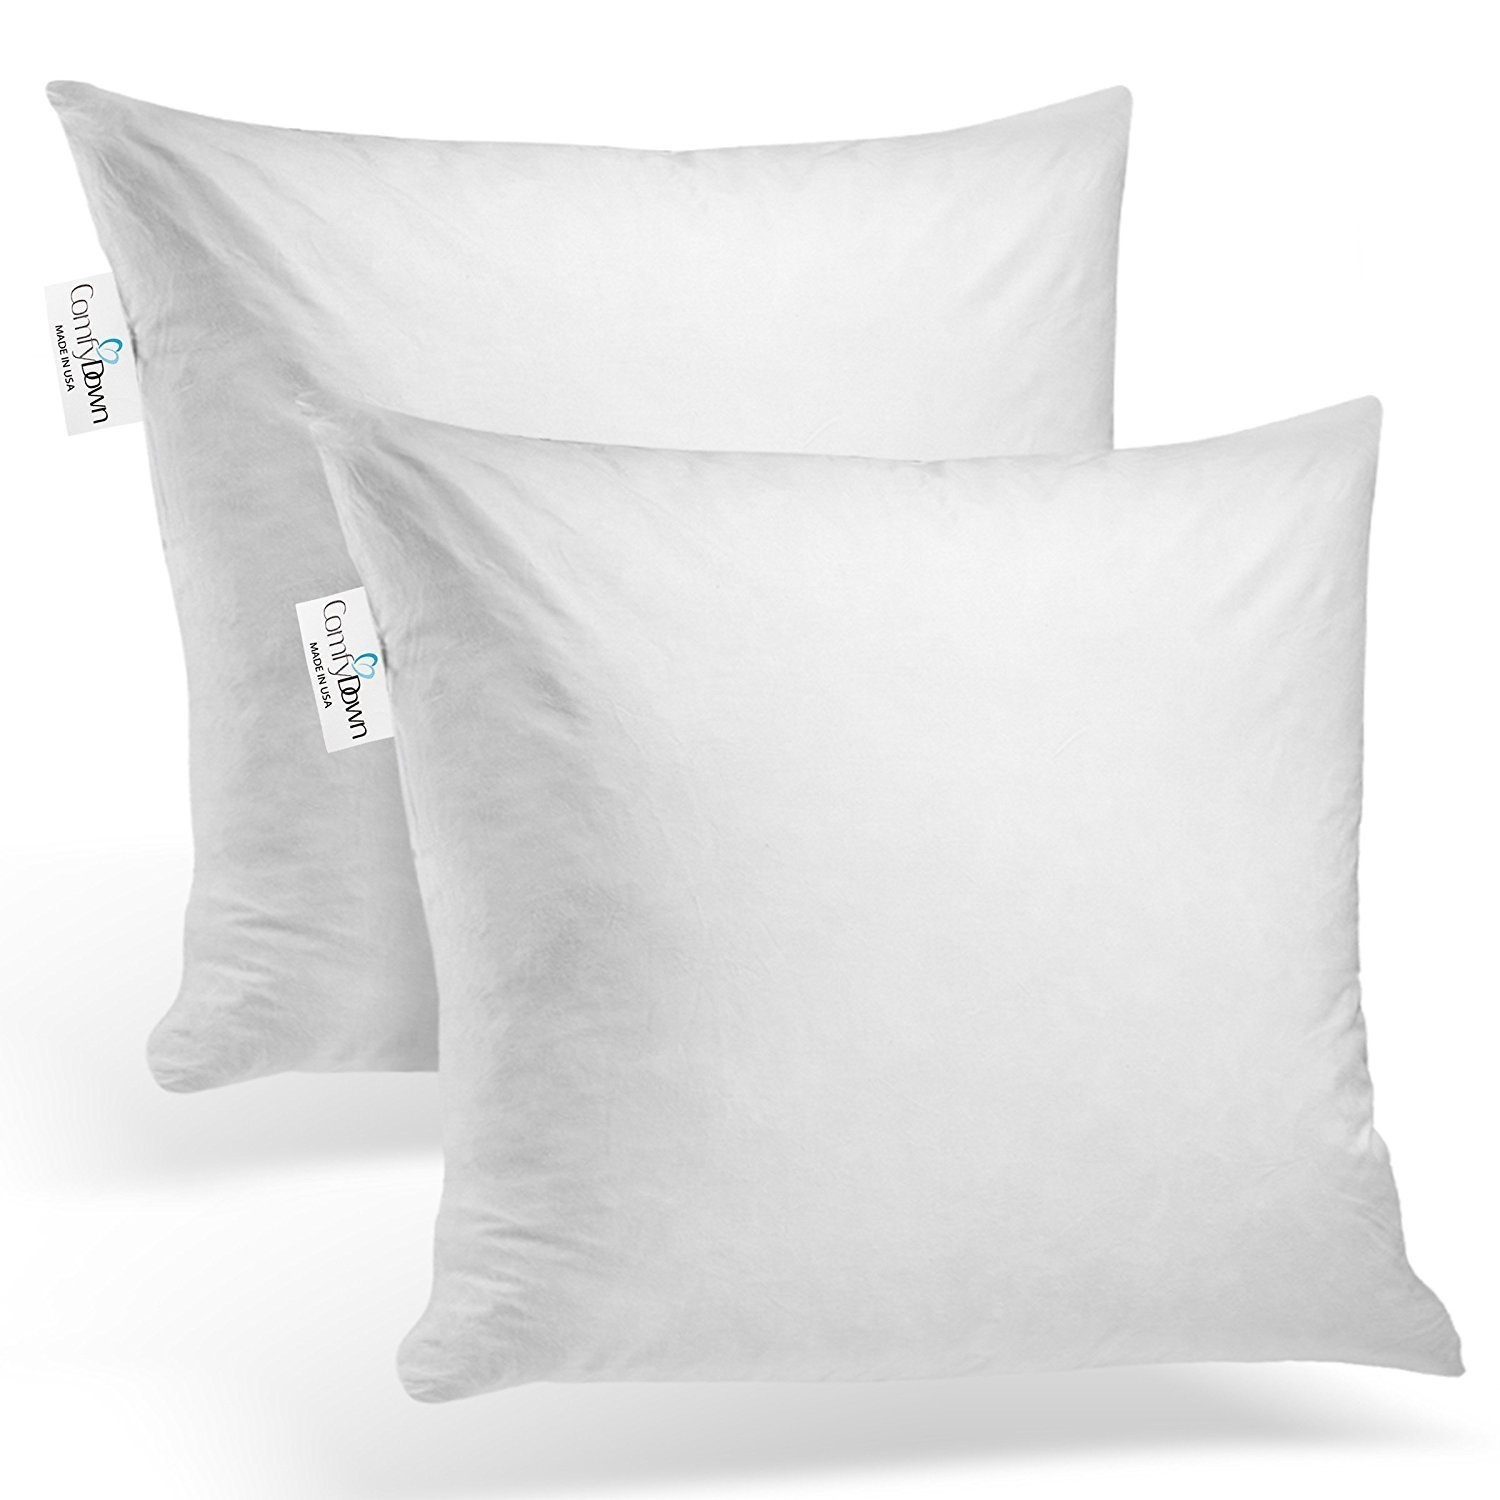 ComfyDown Set of Two, 95% Feather 5% Down, 22 X 22 Square Decorative Pillow Insert, Sham Stuffer - Made in USA